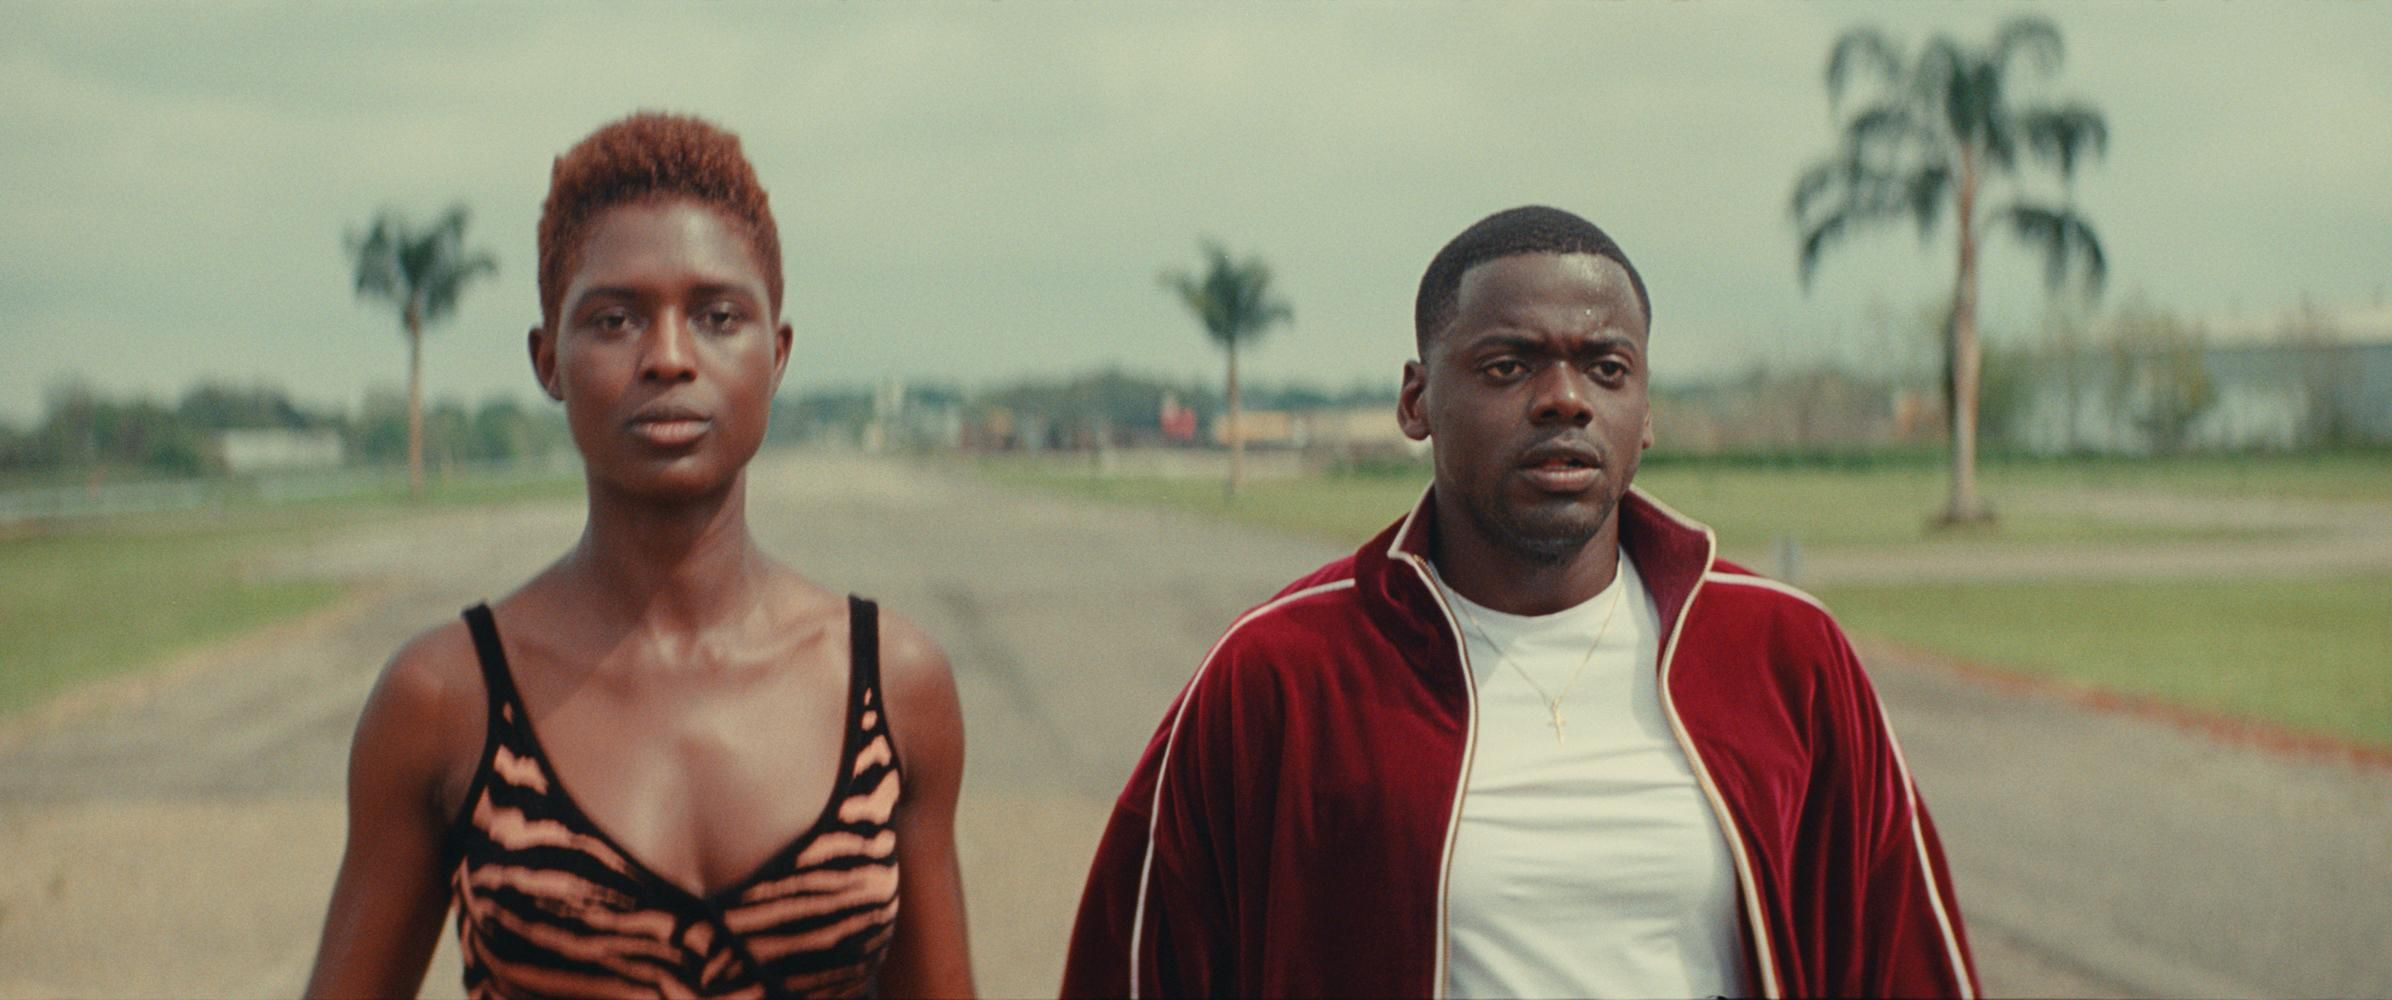 Queen and Slim Film Review [ARTICLE] - Pulse Nigeria